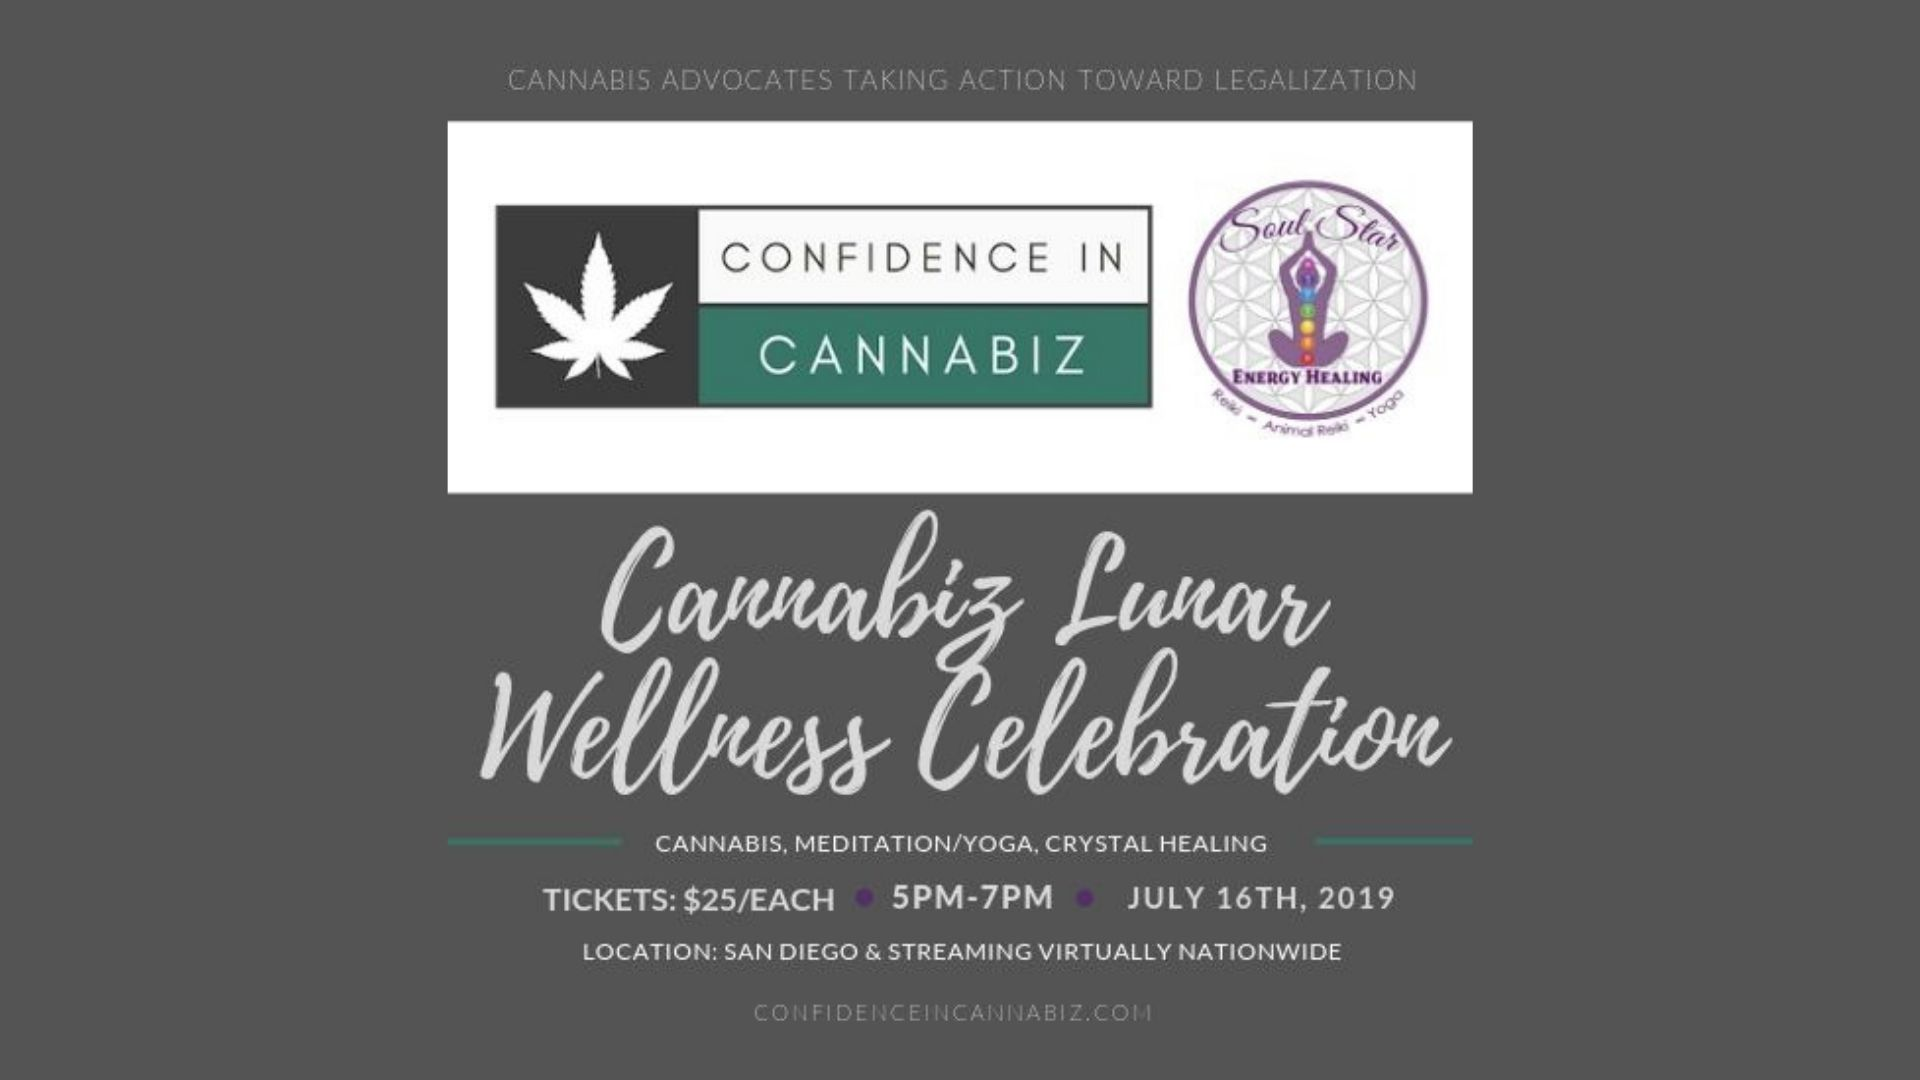 Cannabiz Lunar Wellness Celebration